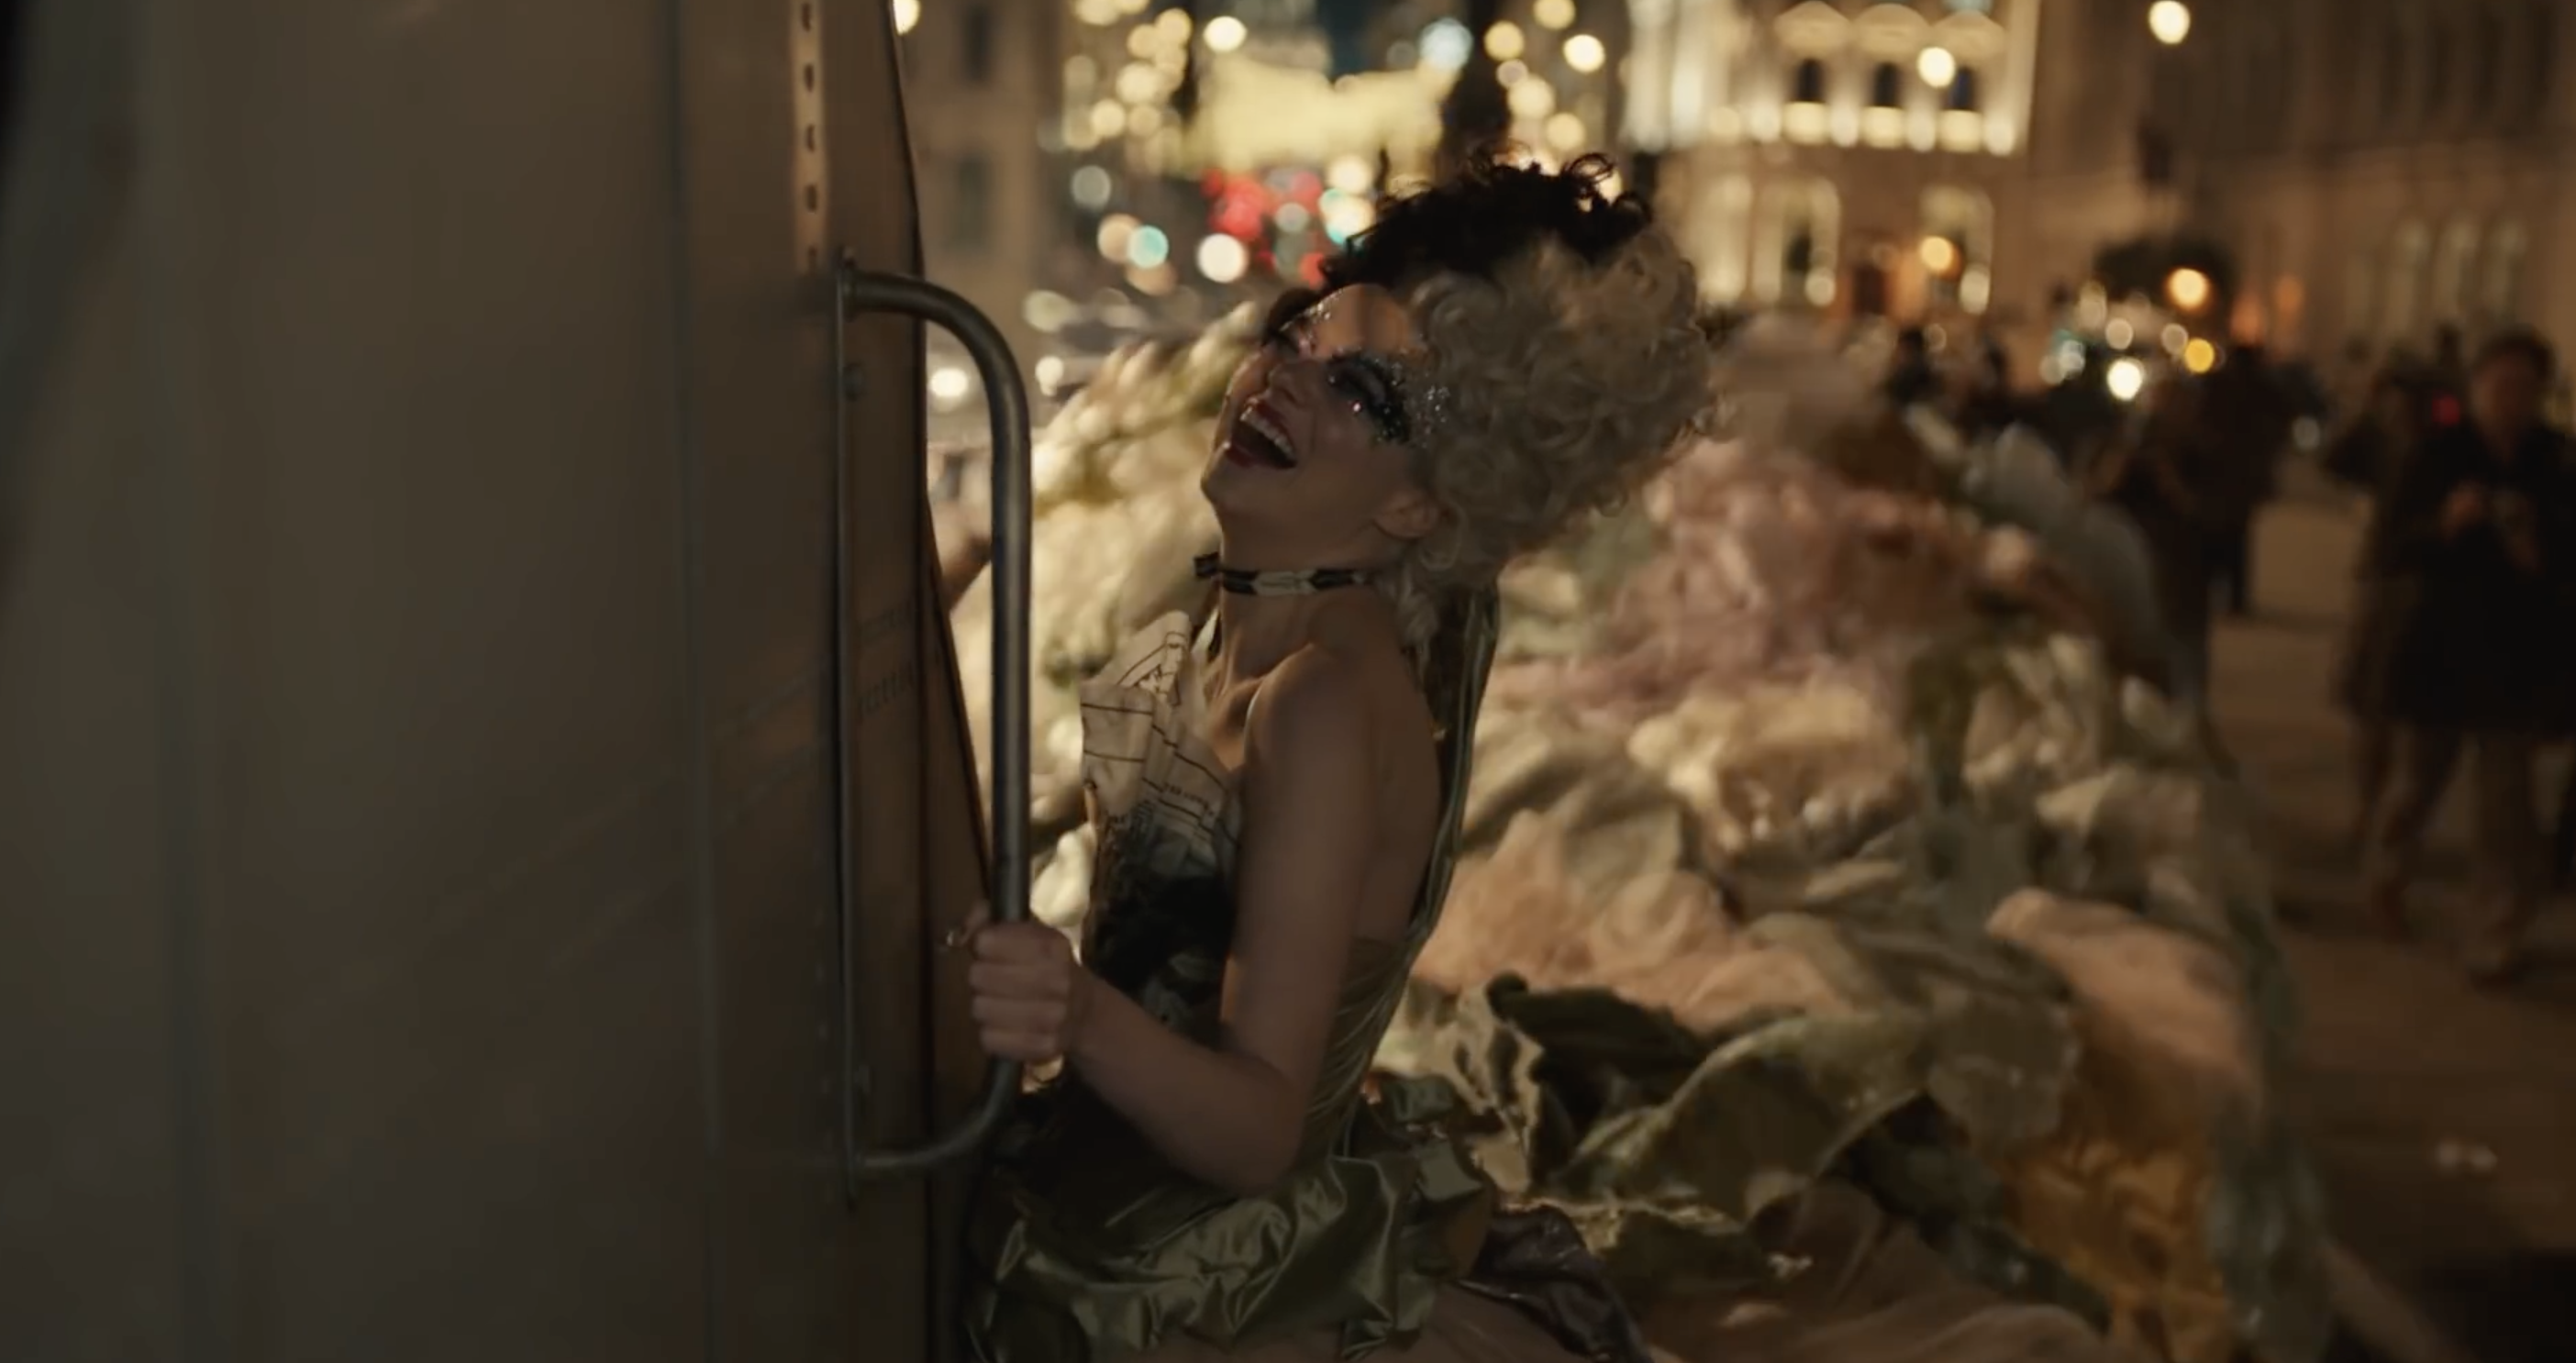 cruella de vil clinging to the back of a truck while wearing a ballgown